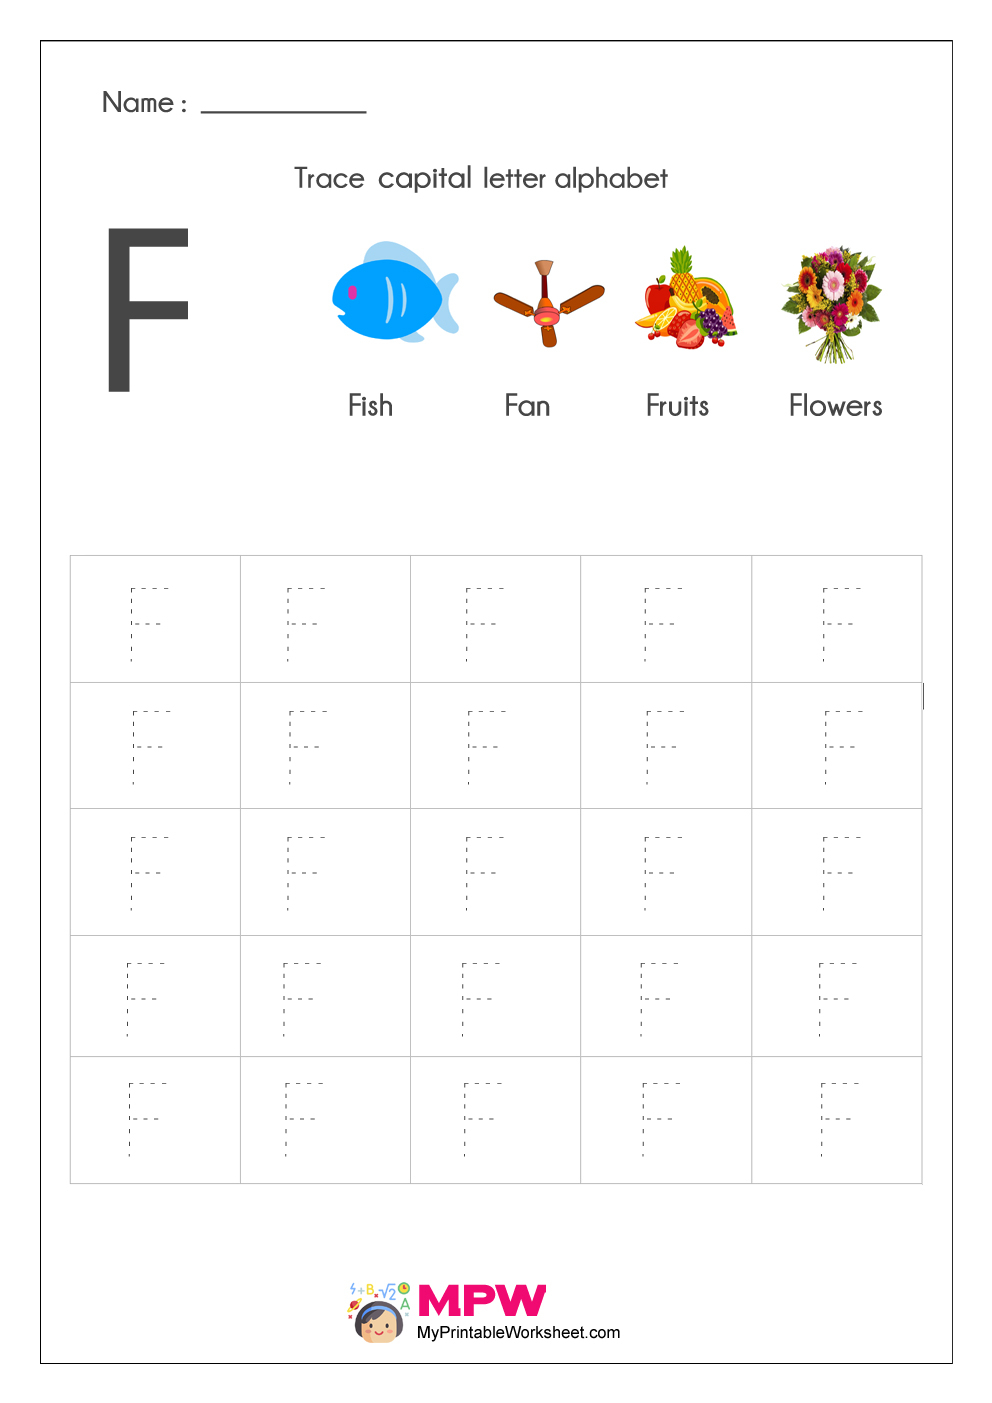 Alphabet Tracing Worksheets, Printable English Capital inside F Letter Tracing